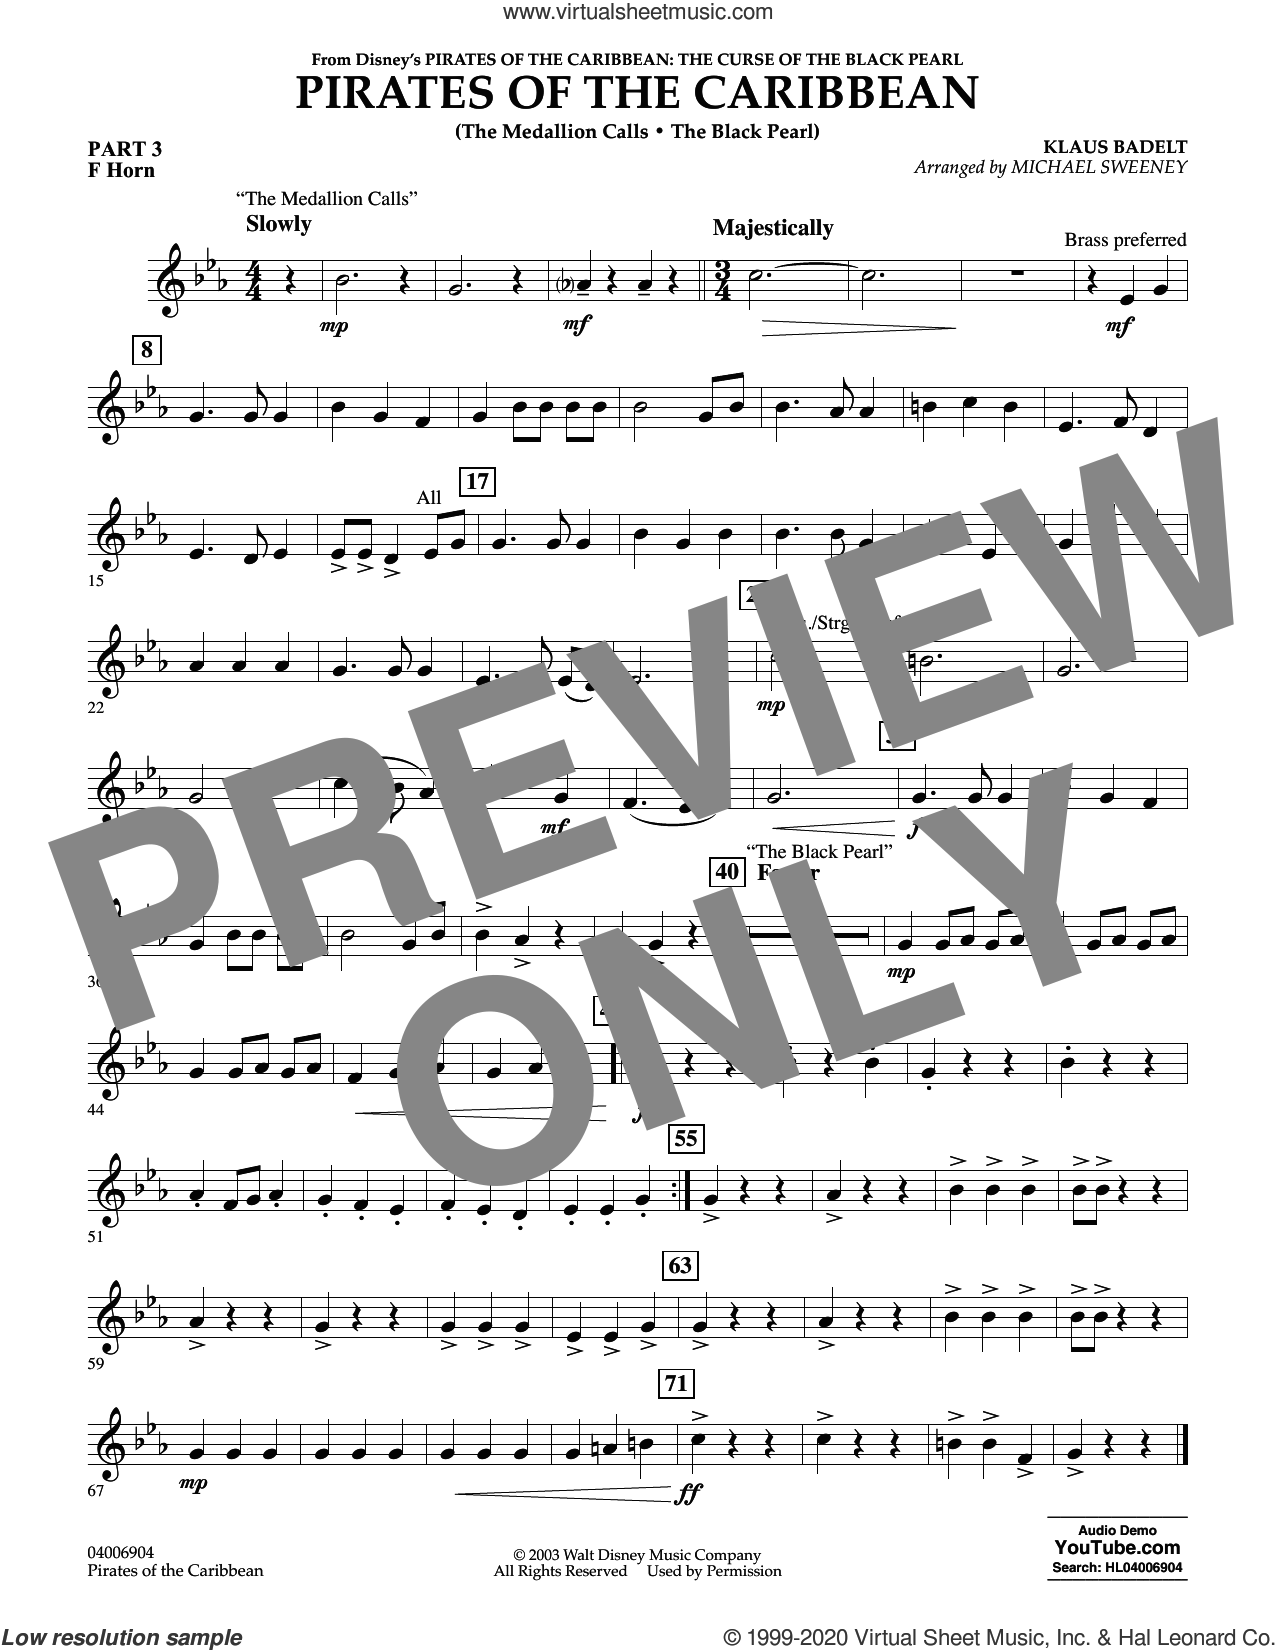 Pirates of the Caribbean (from The Curse of the Black Pearl) sheet music for concert band (pt.3 - f horn) by Klaus Badelt and Michael Sweeney, intermediate skill level